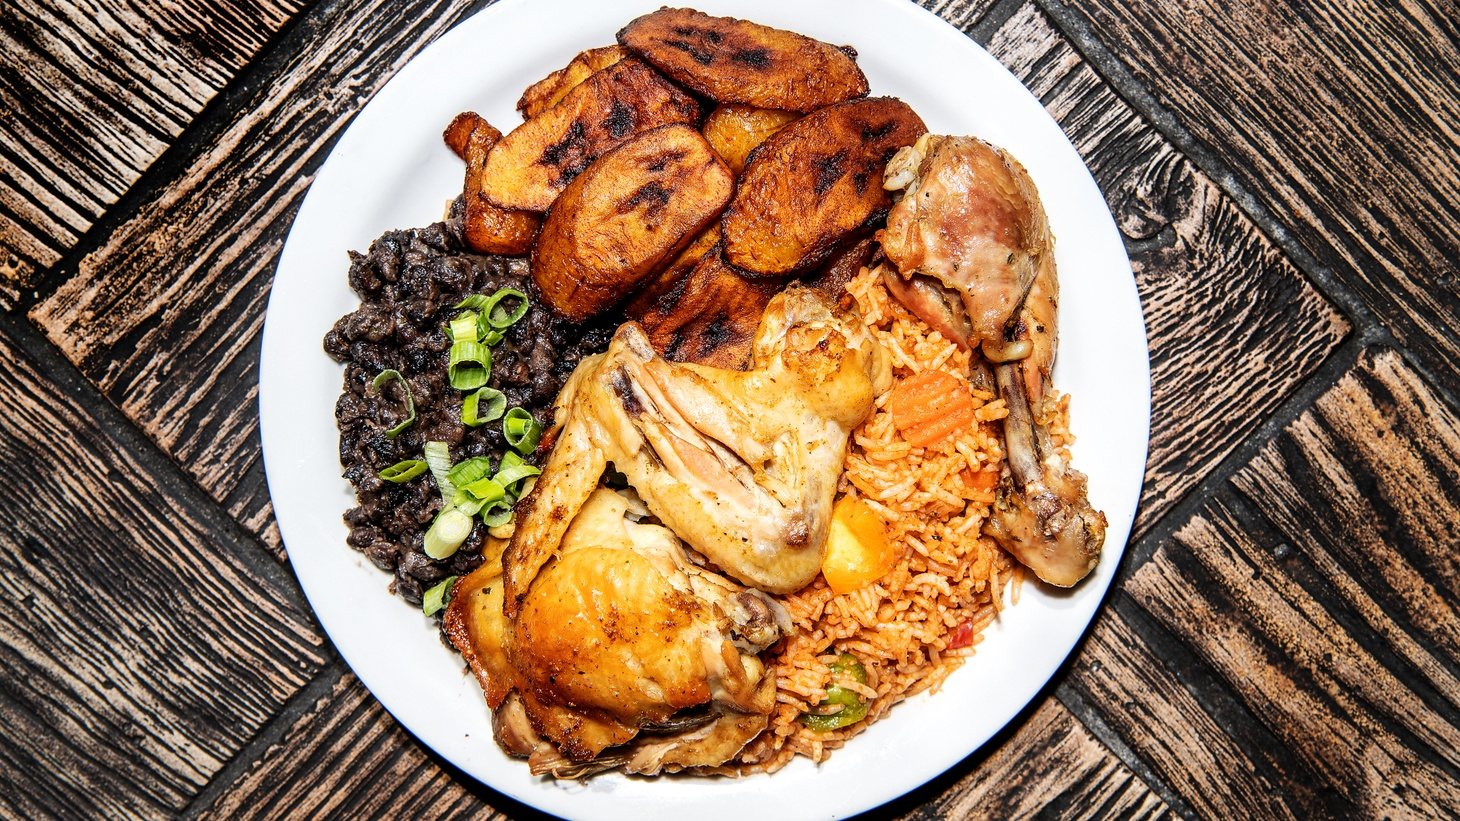 Cameroonian food is based on greens, but LA Times restaurant critic Bill Addison also recommends jollof rice served with plantains and a choice of meat.